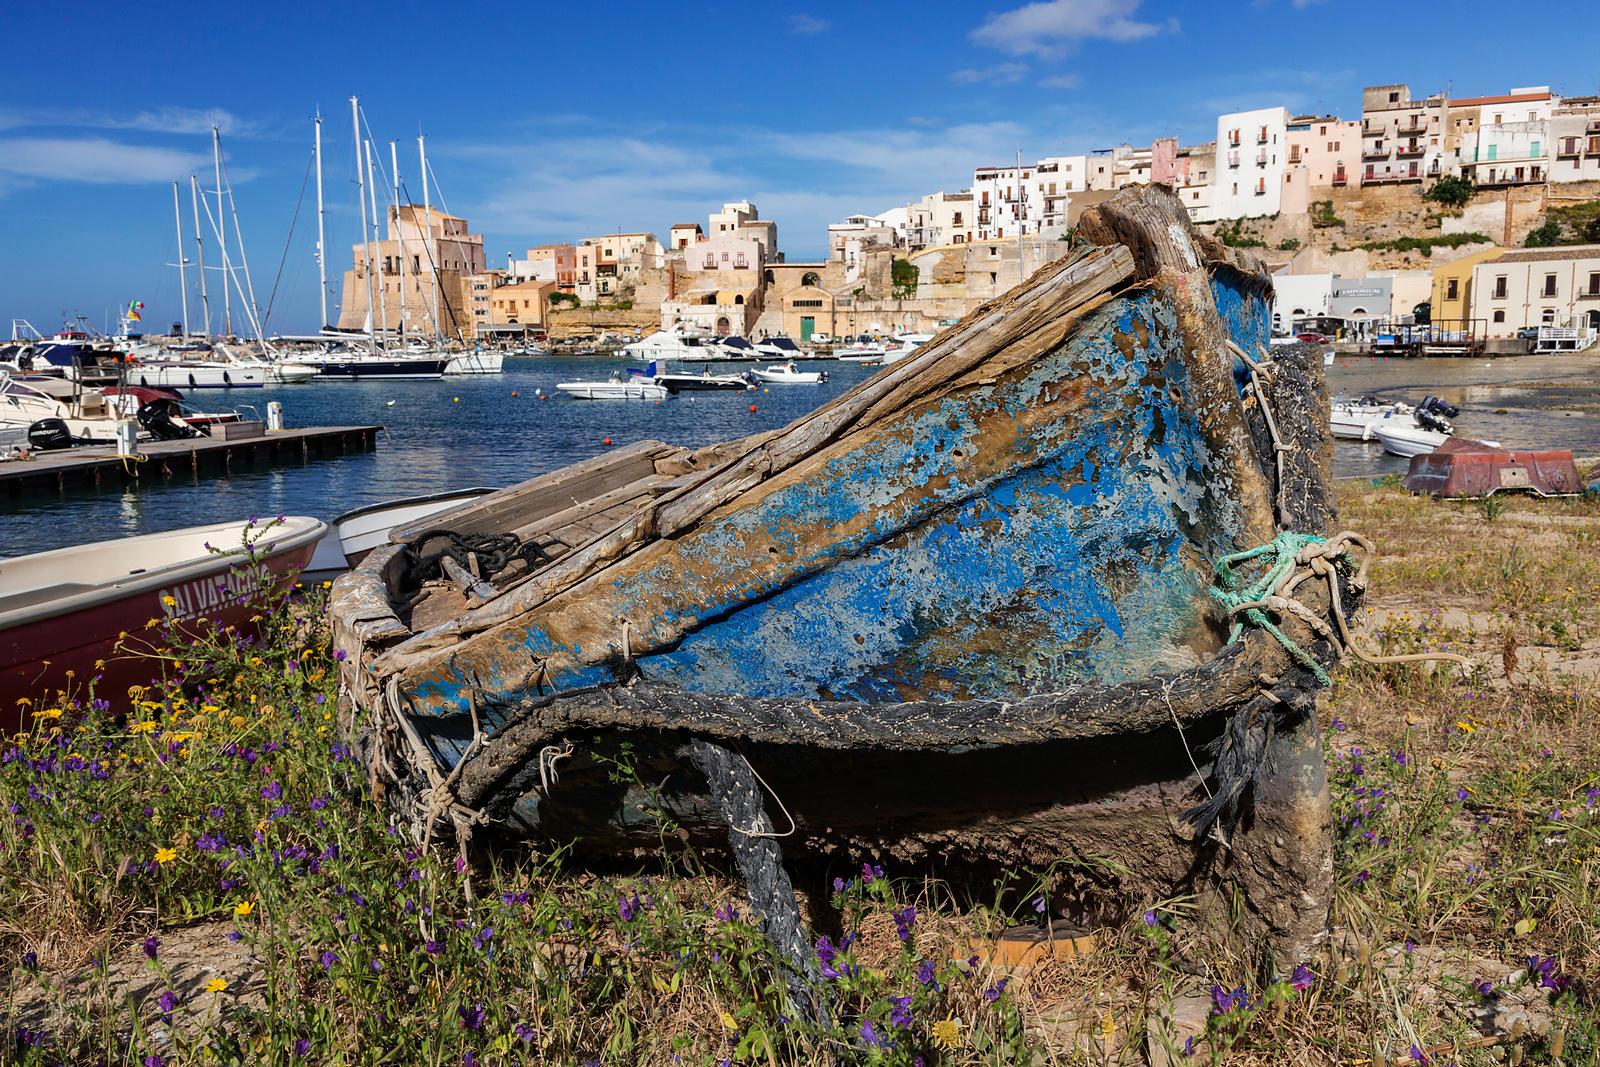 Old Boat Moored on the Shore of the Harbour